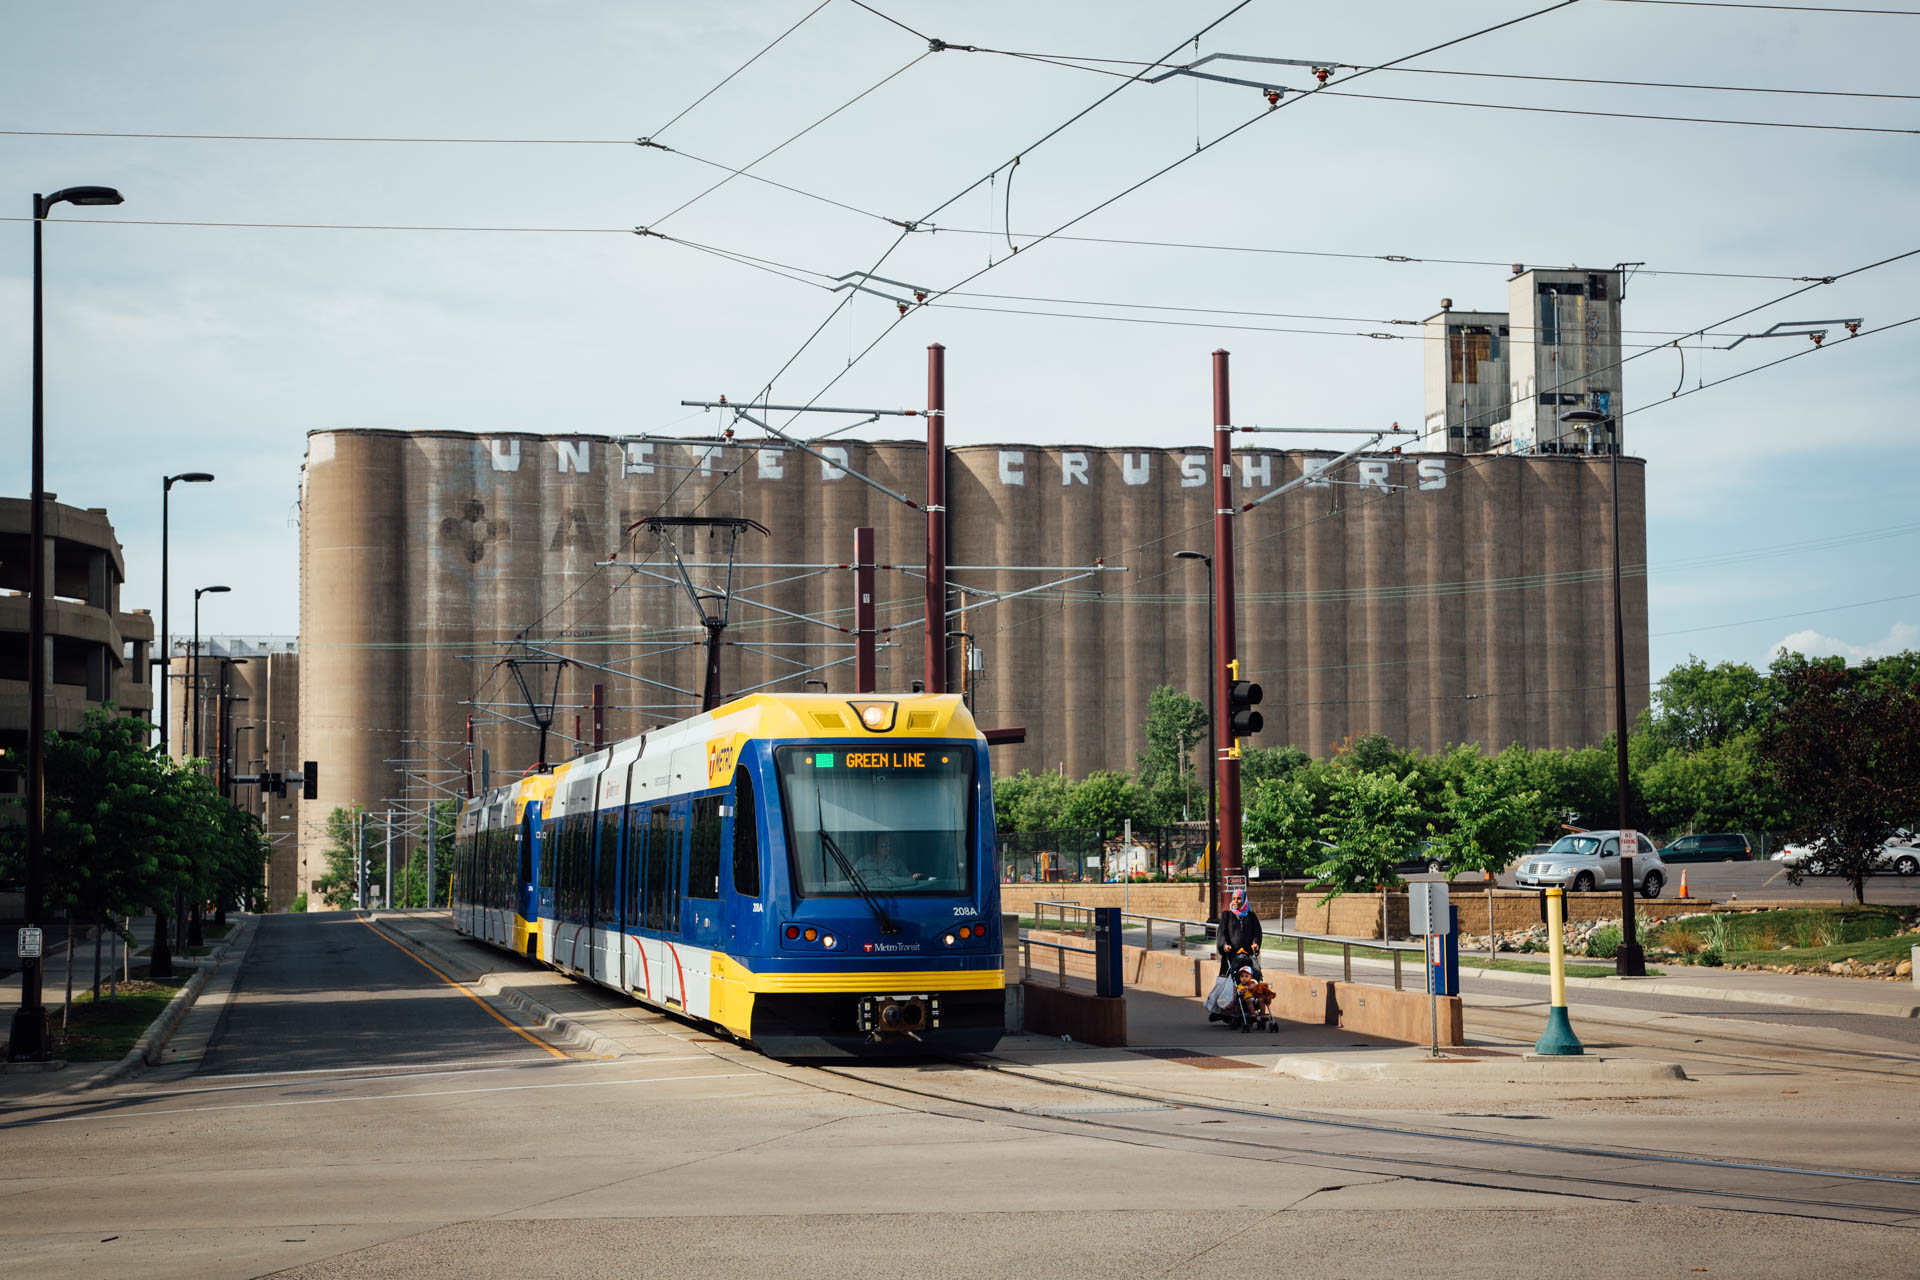 metra-transit-streetcar-adm-grain-elevator-minneapolis-mn-5764untitled